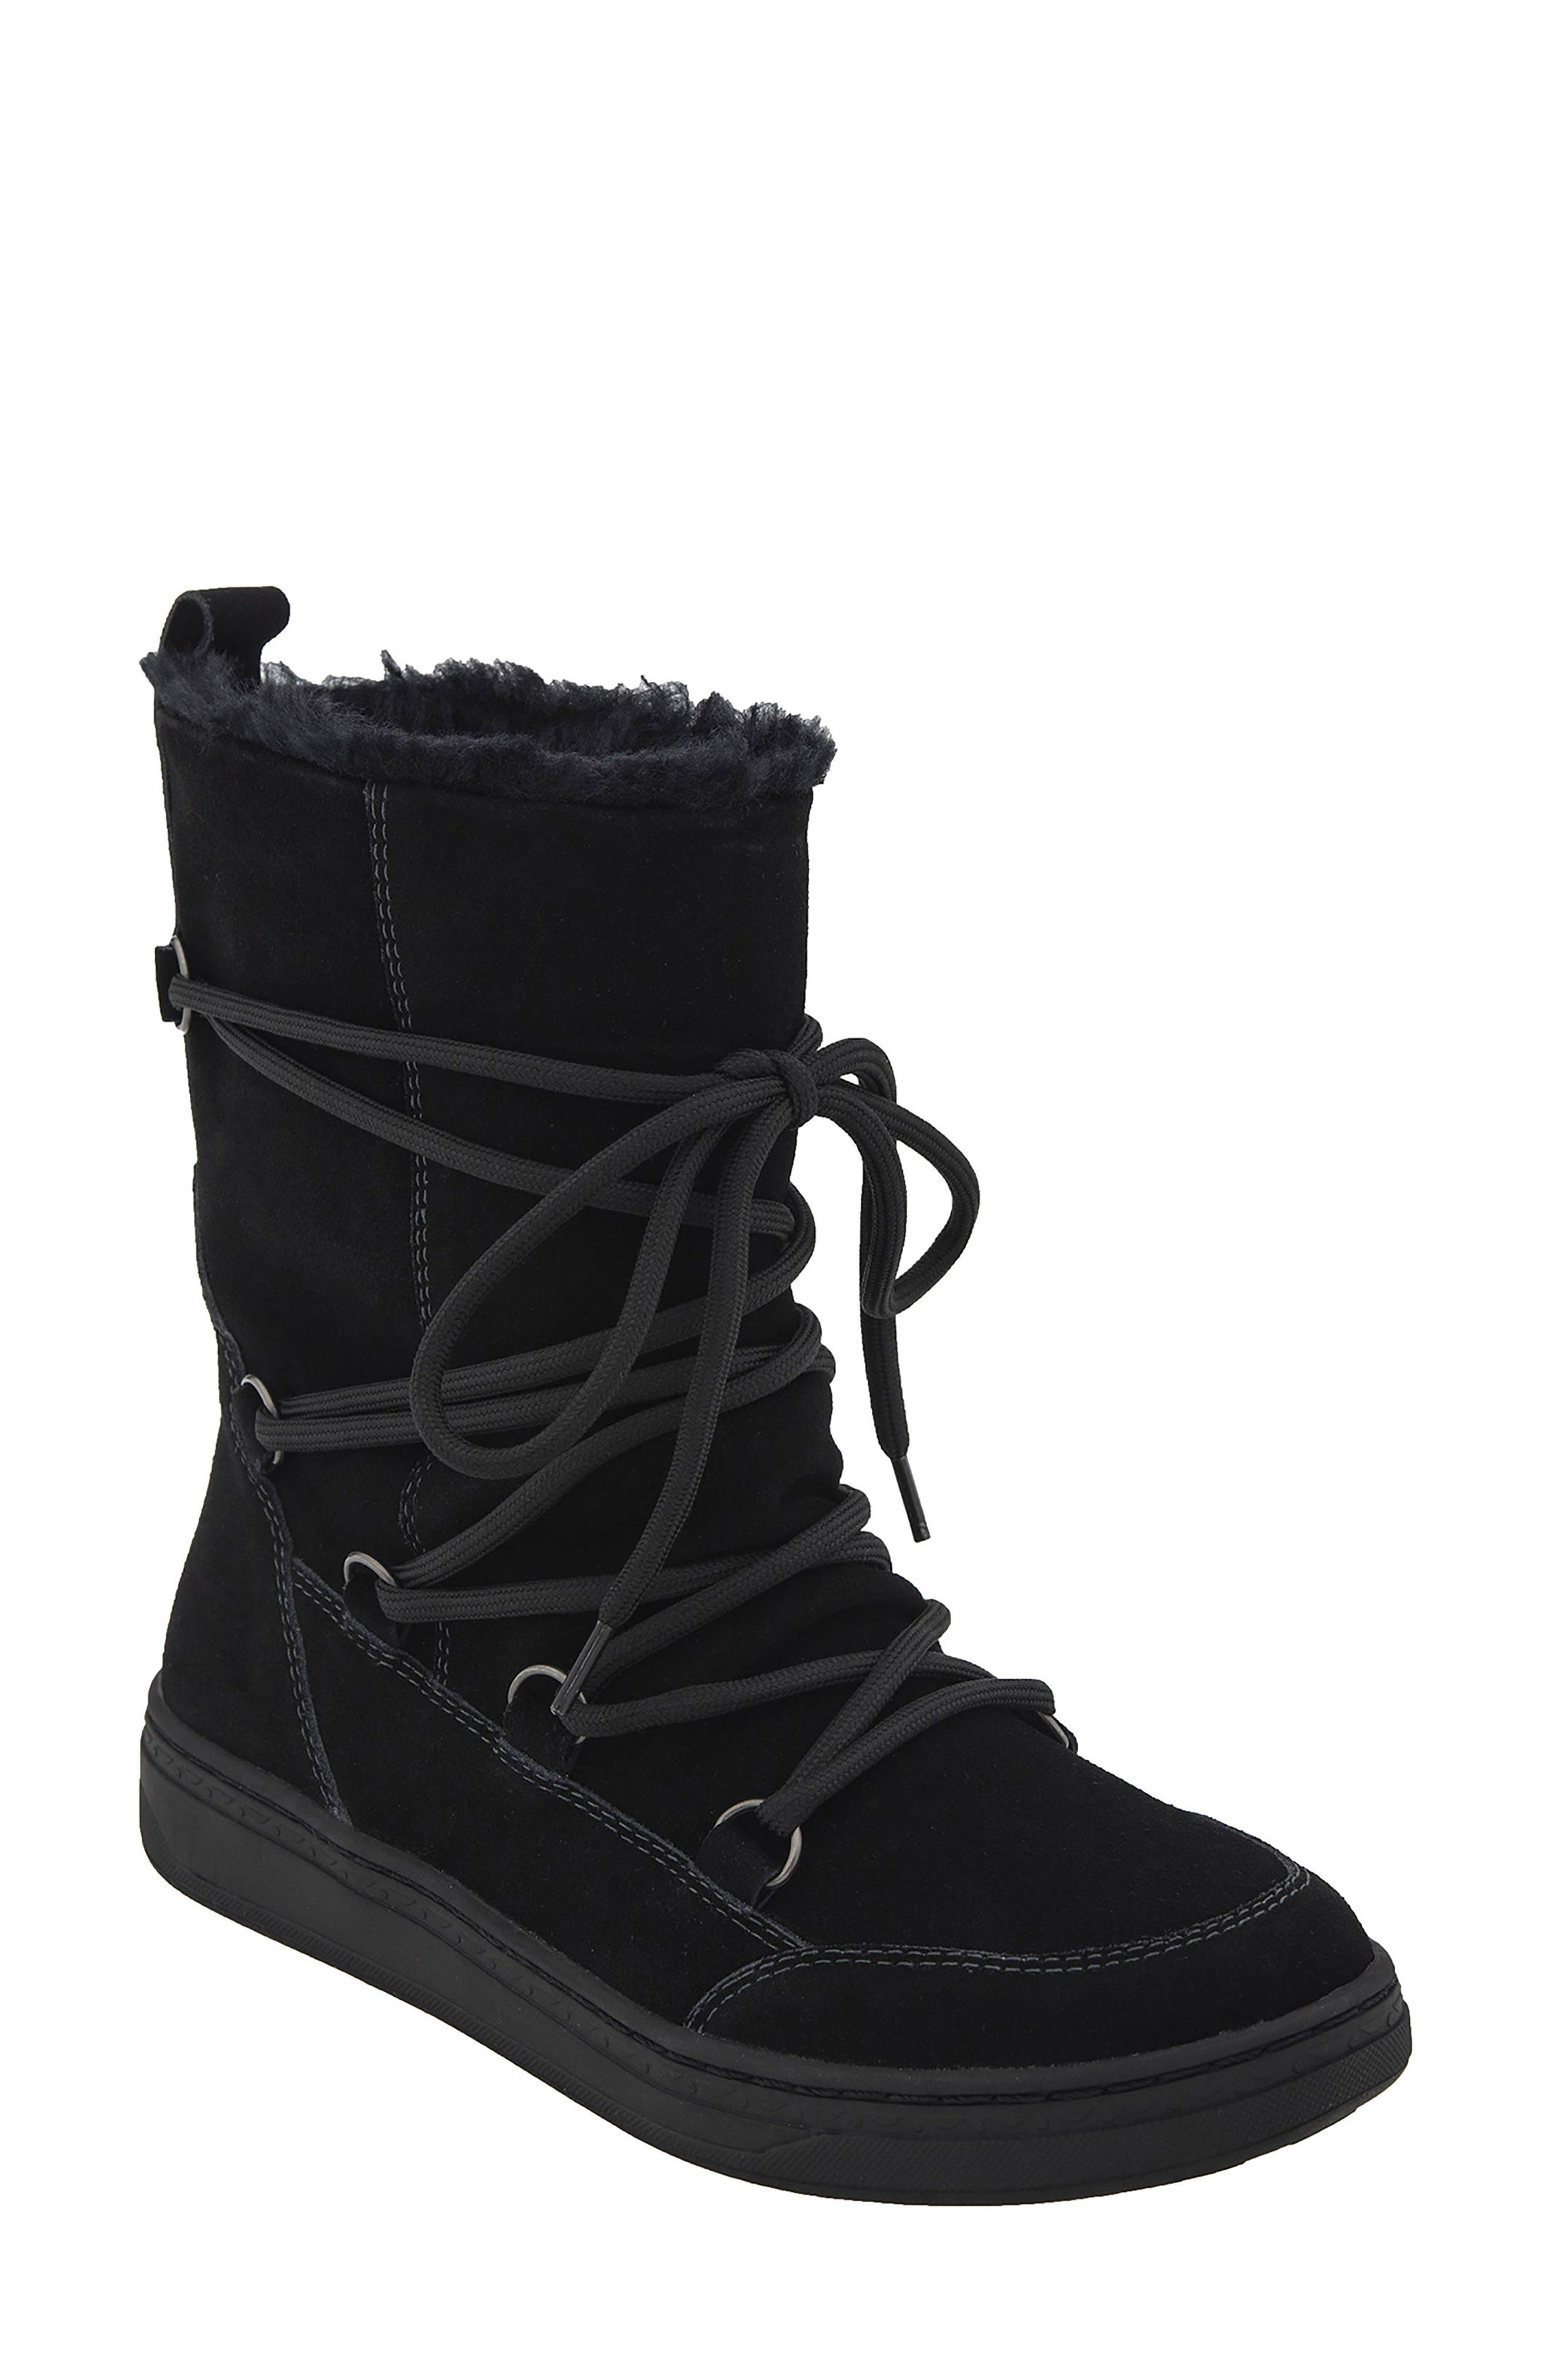 Zodiac Water Resistant Boot,                         Main,                         color, Black Suede